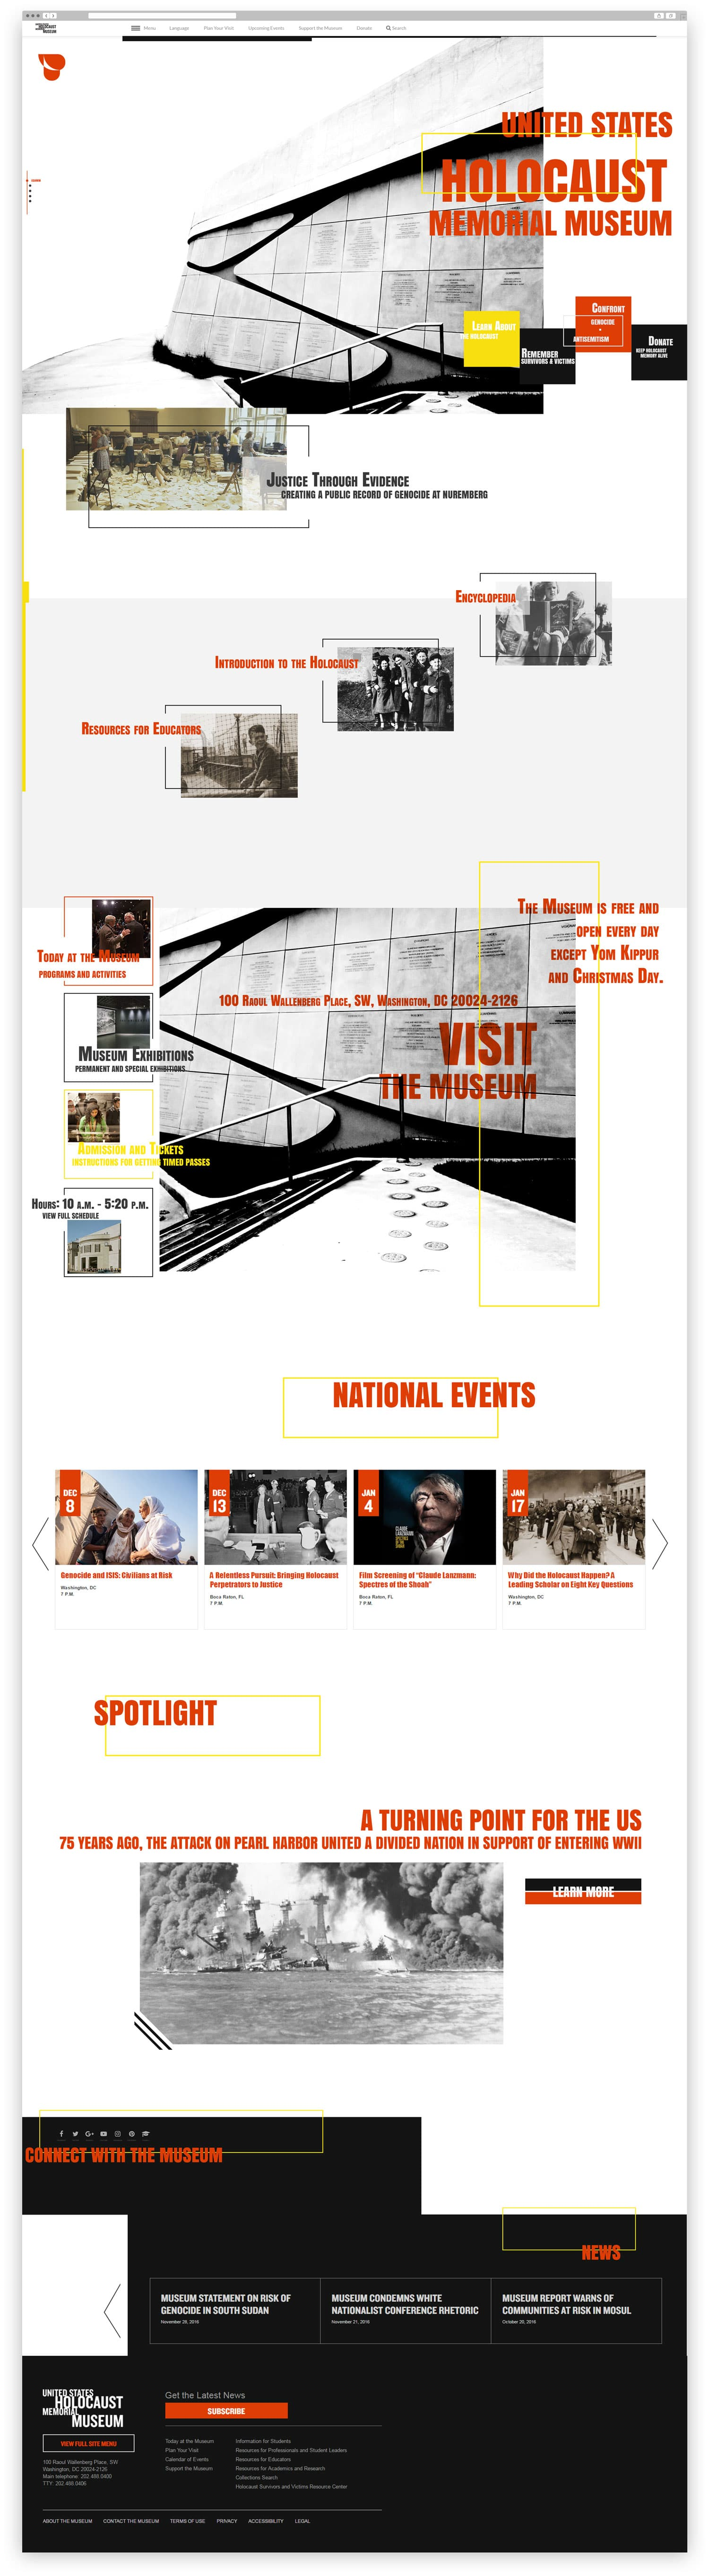 USHMM full front web page final design